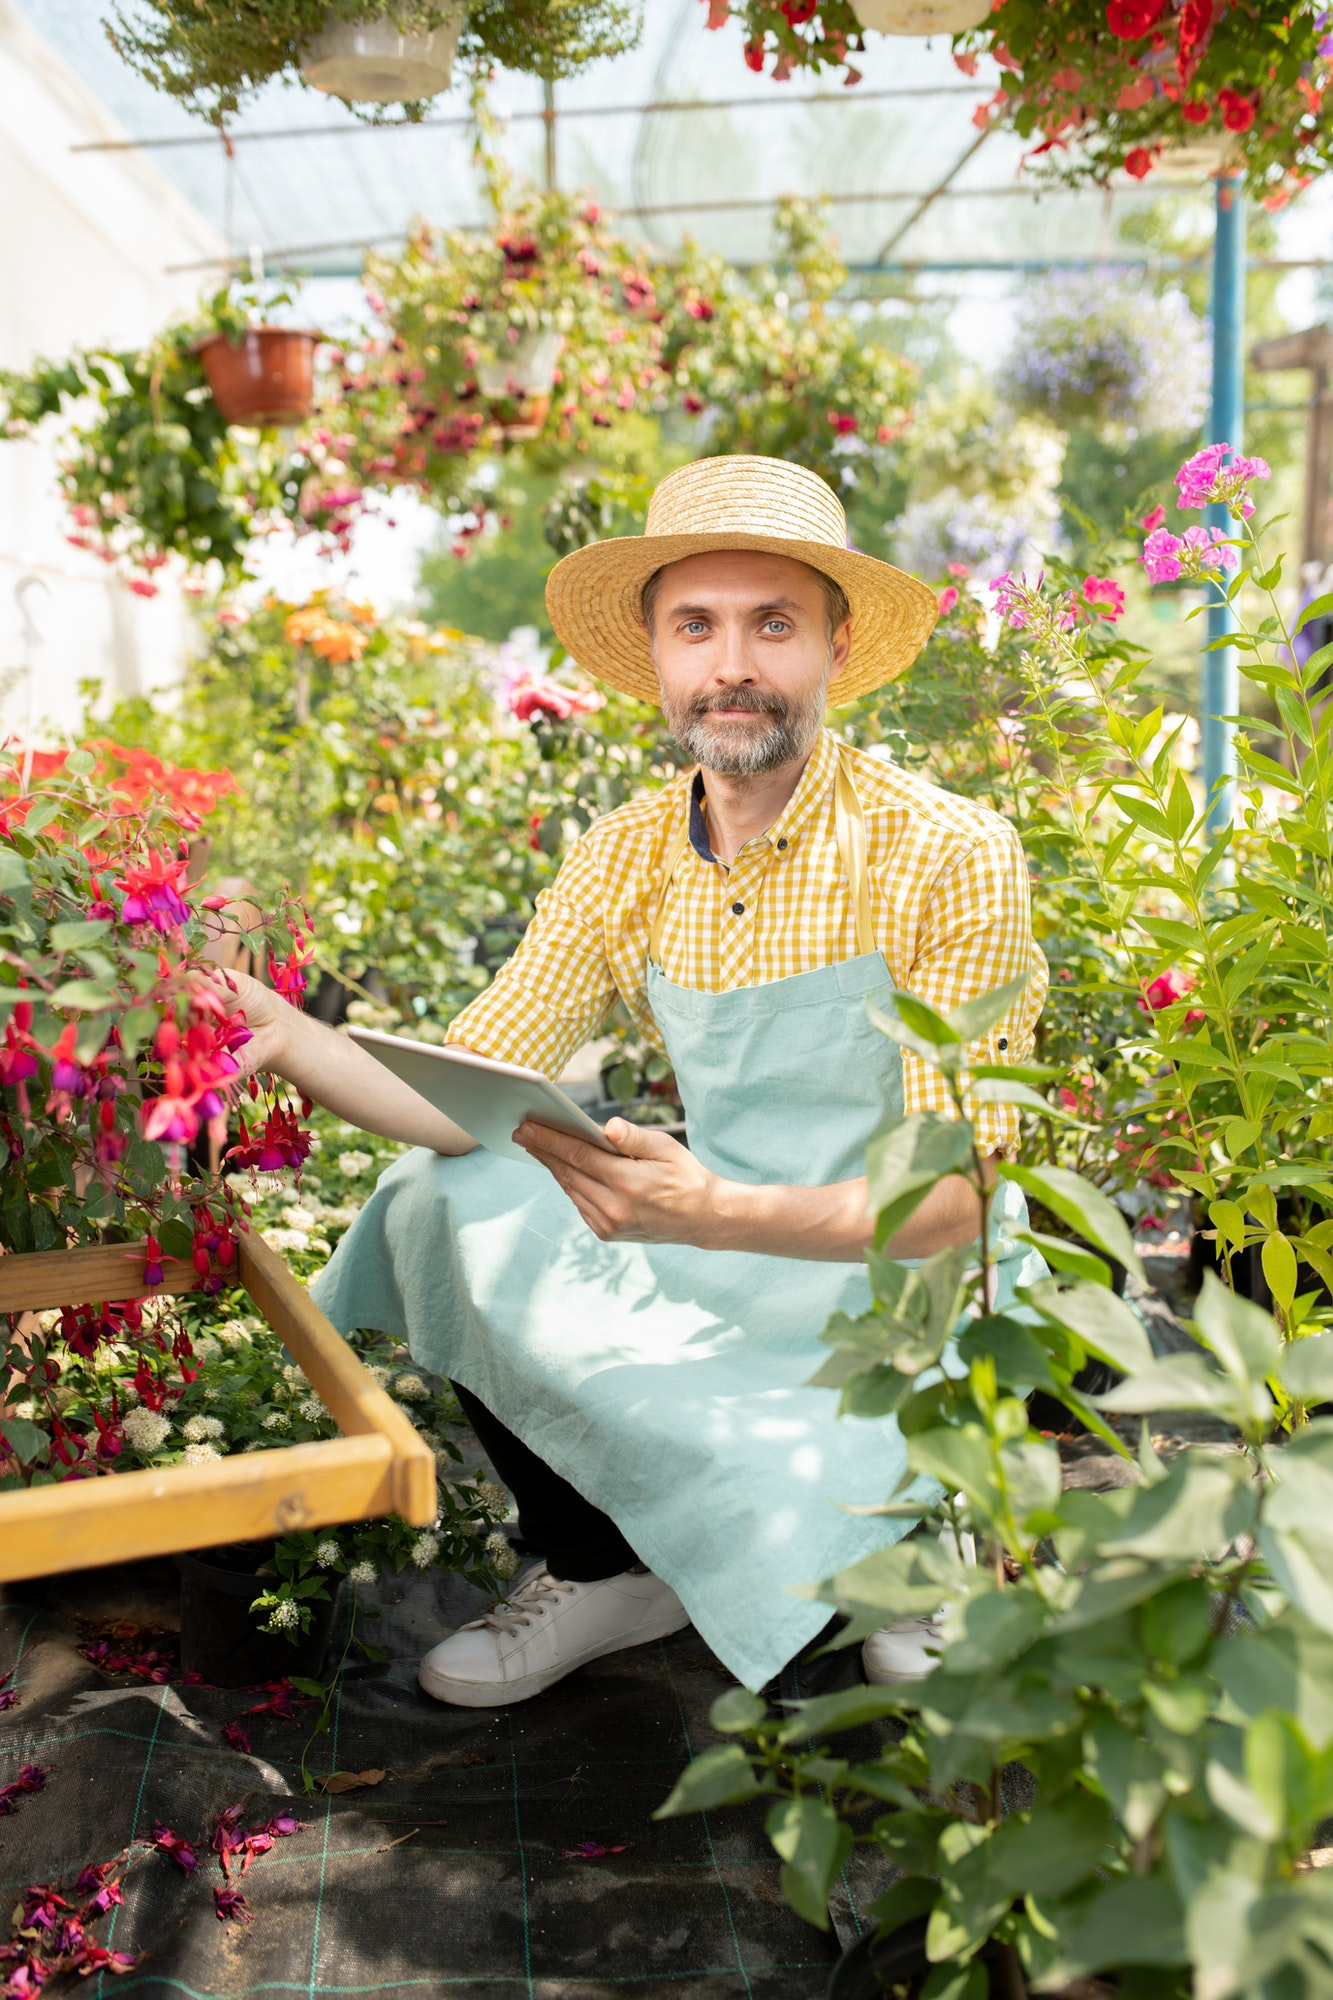 Contemporary farmer in workwear searching for names of new sorts of flowers